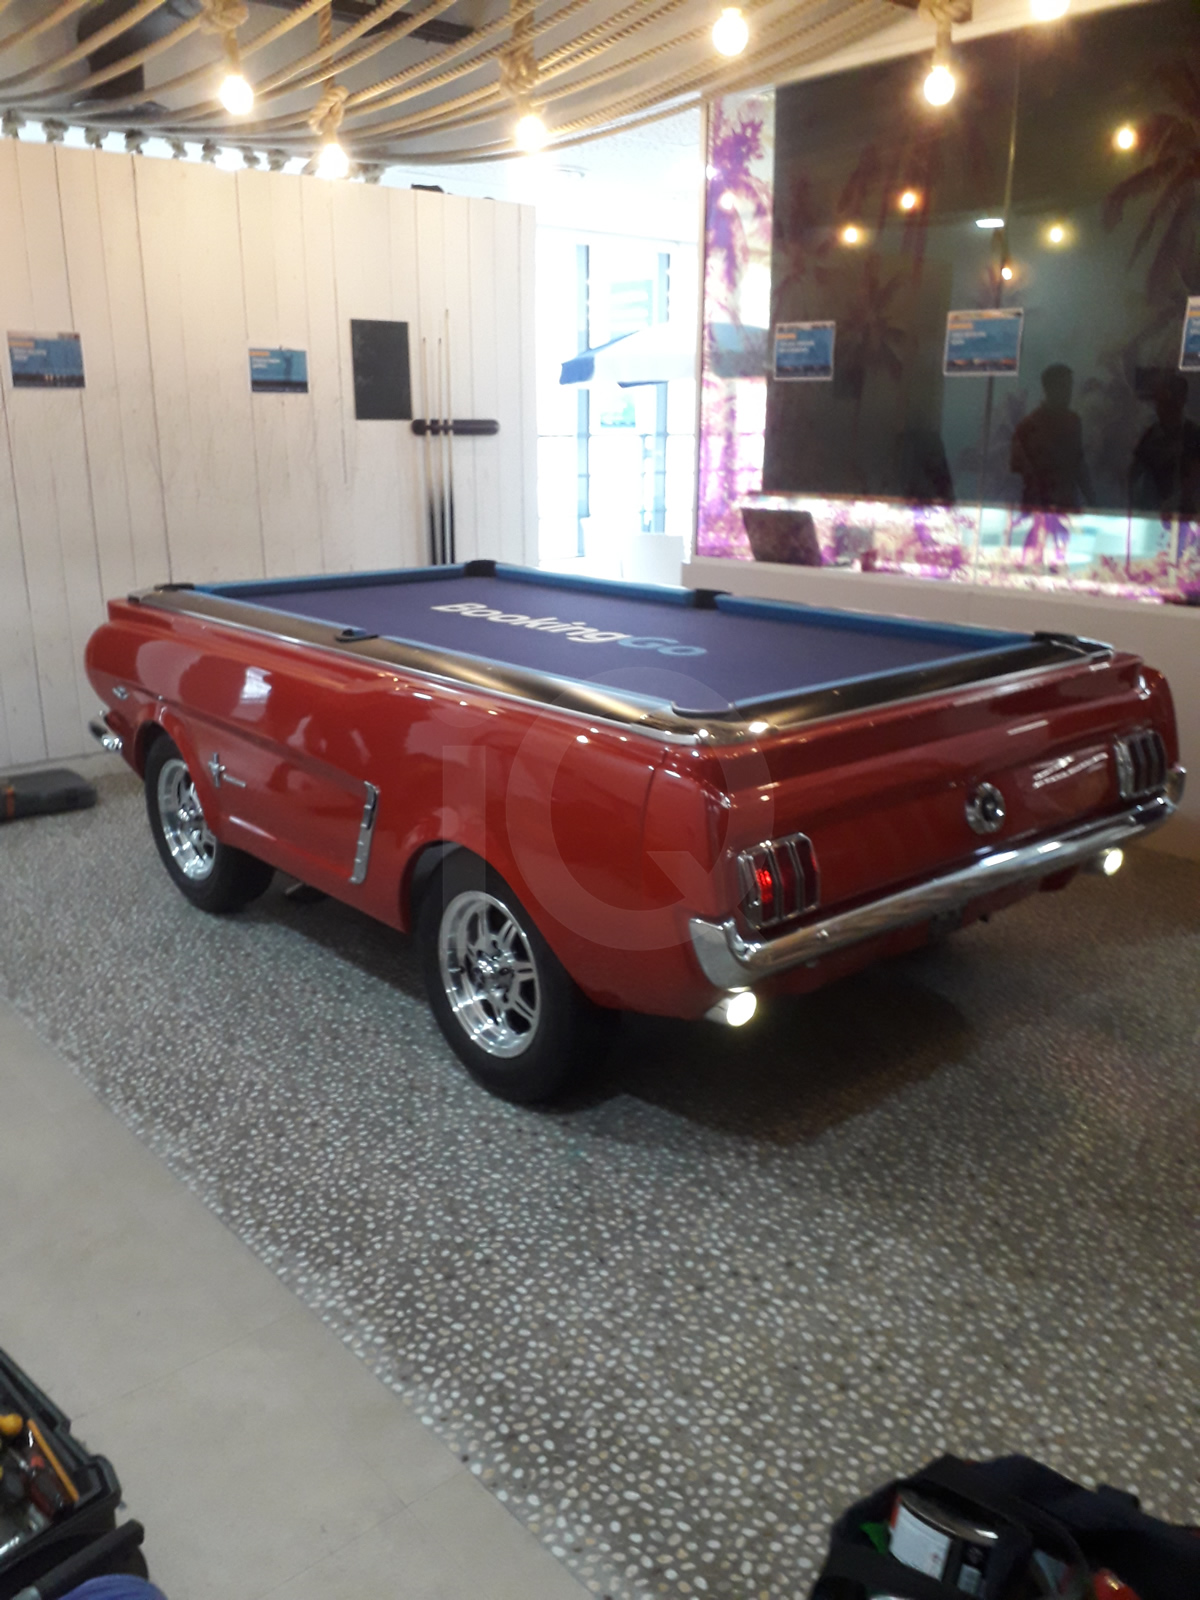 Recover of an  American Mustang Car with a Pool Table Top After Image 7